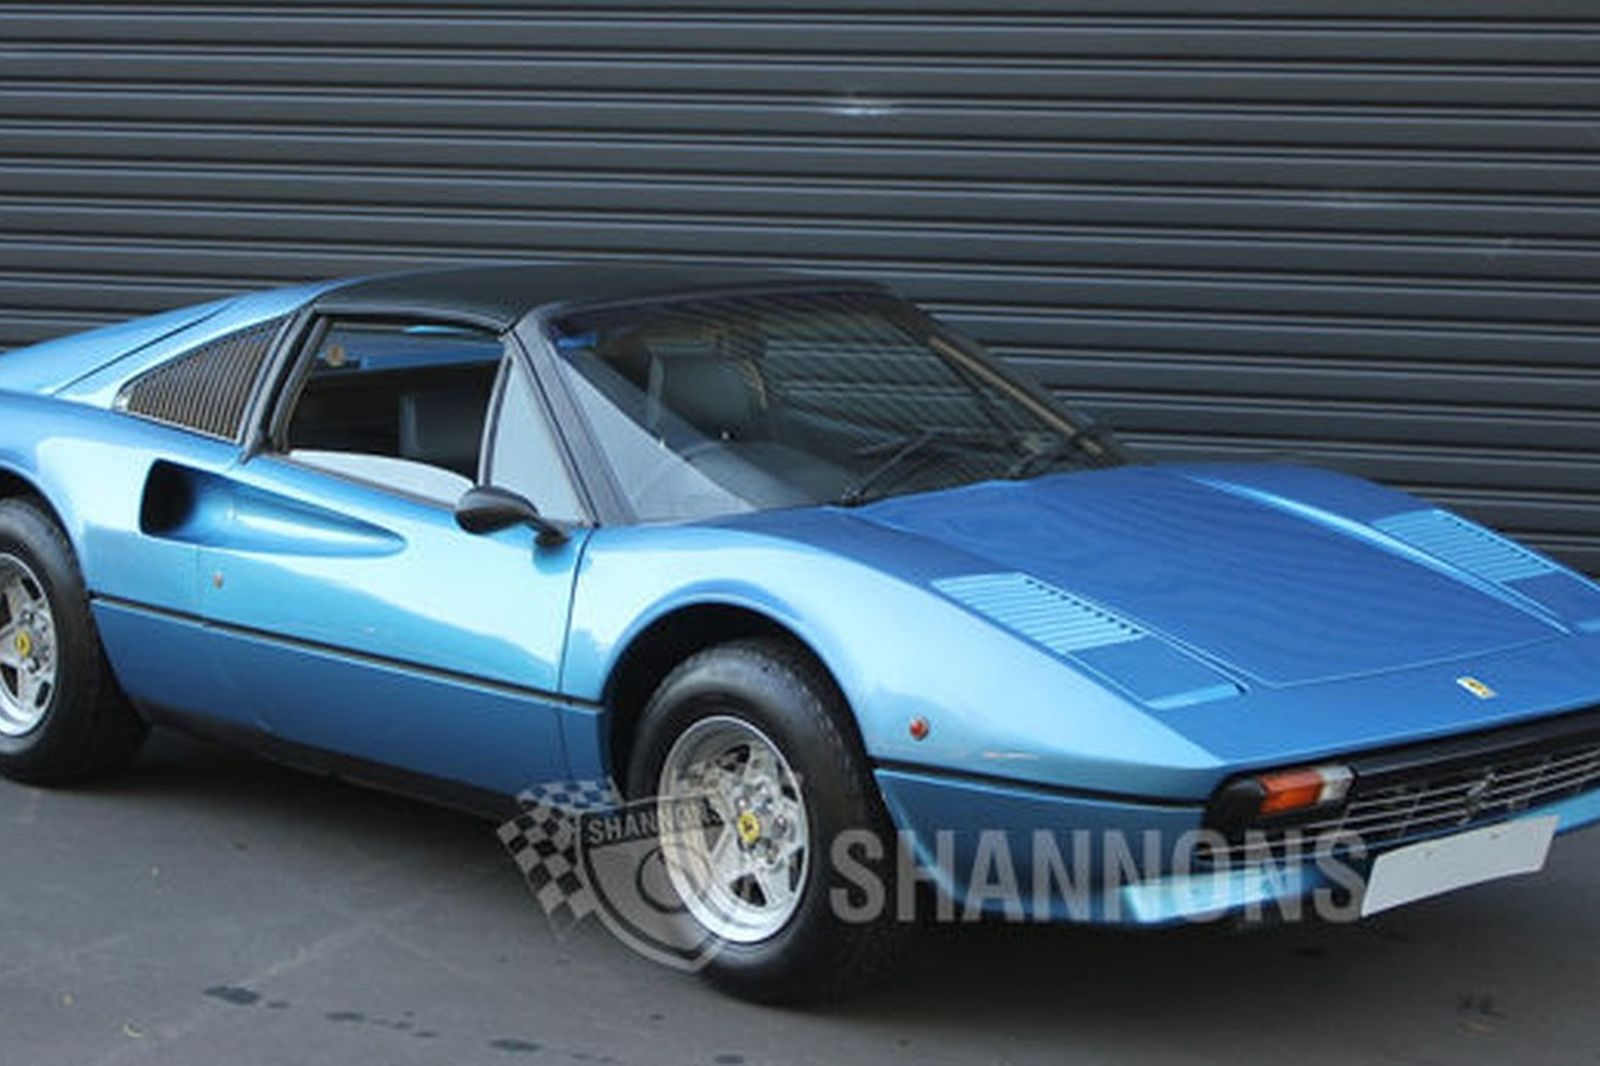 Ferrari 308 GTS Coupe Auctions  Lot 49  Shannons